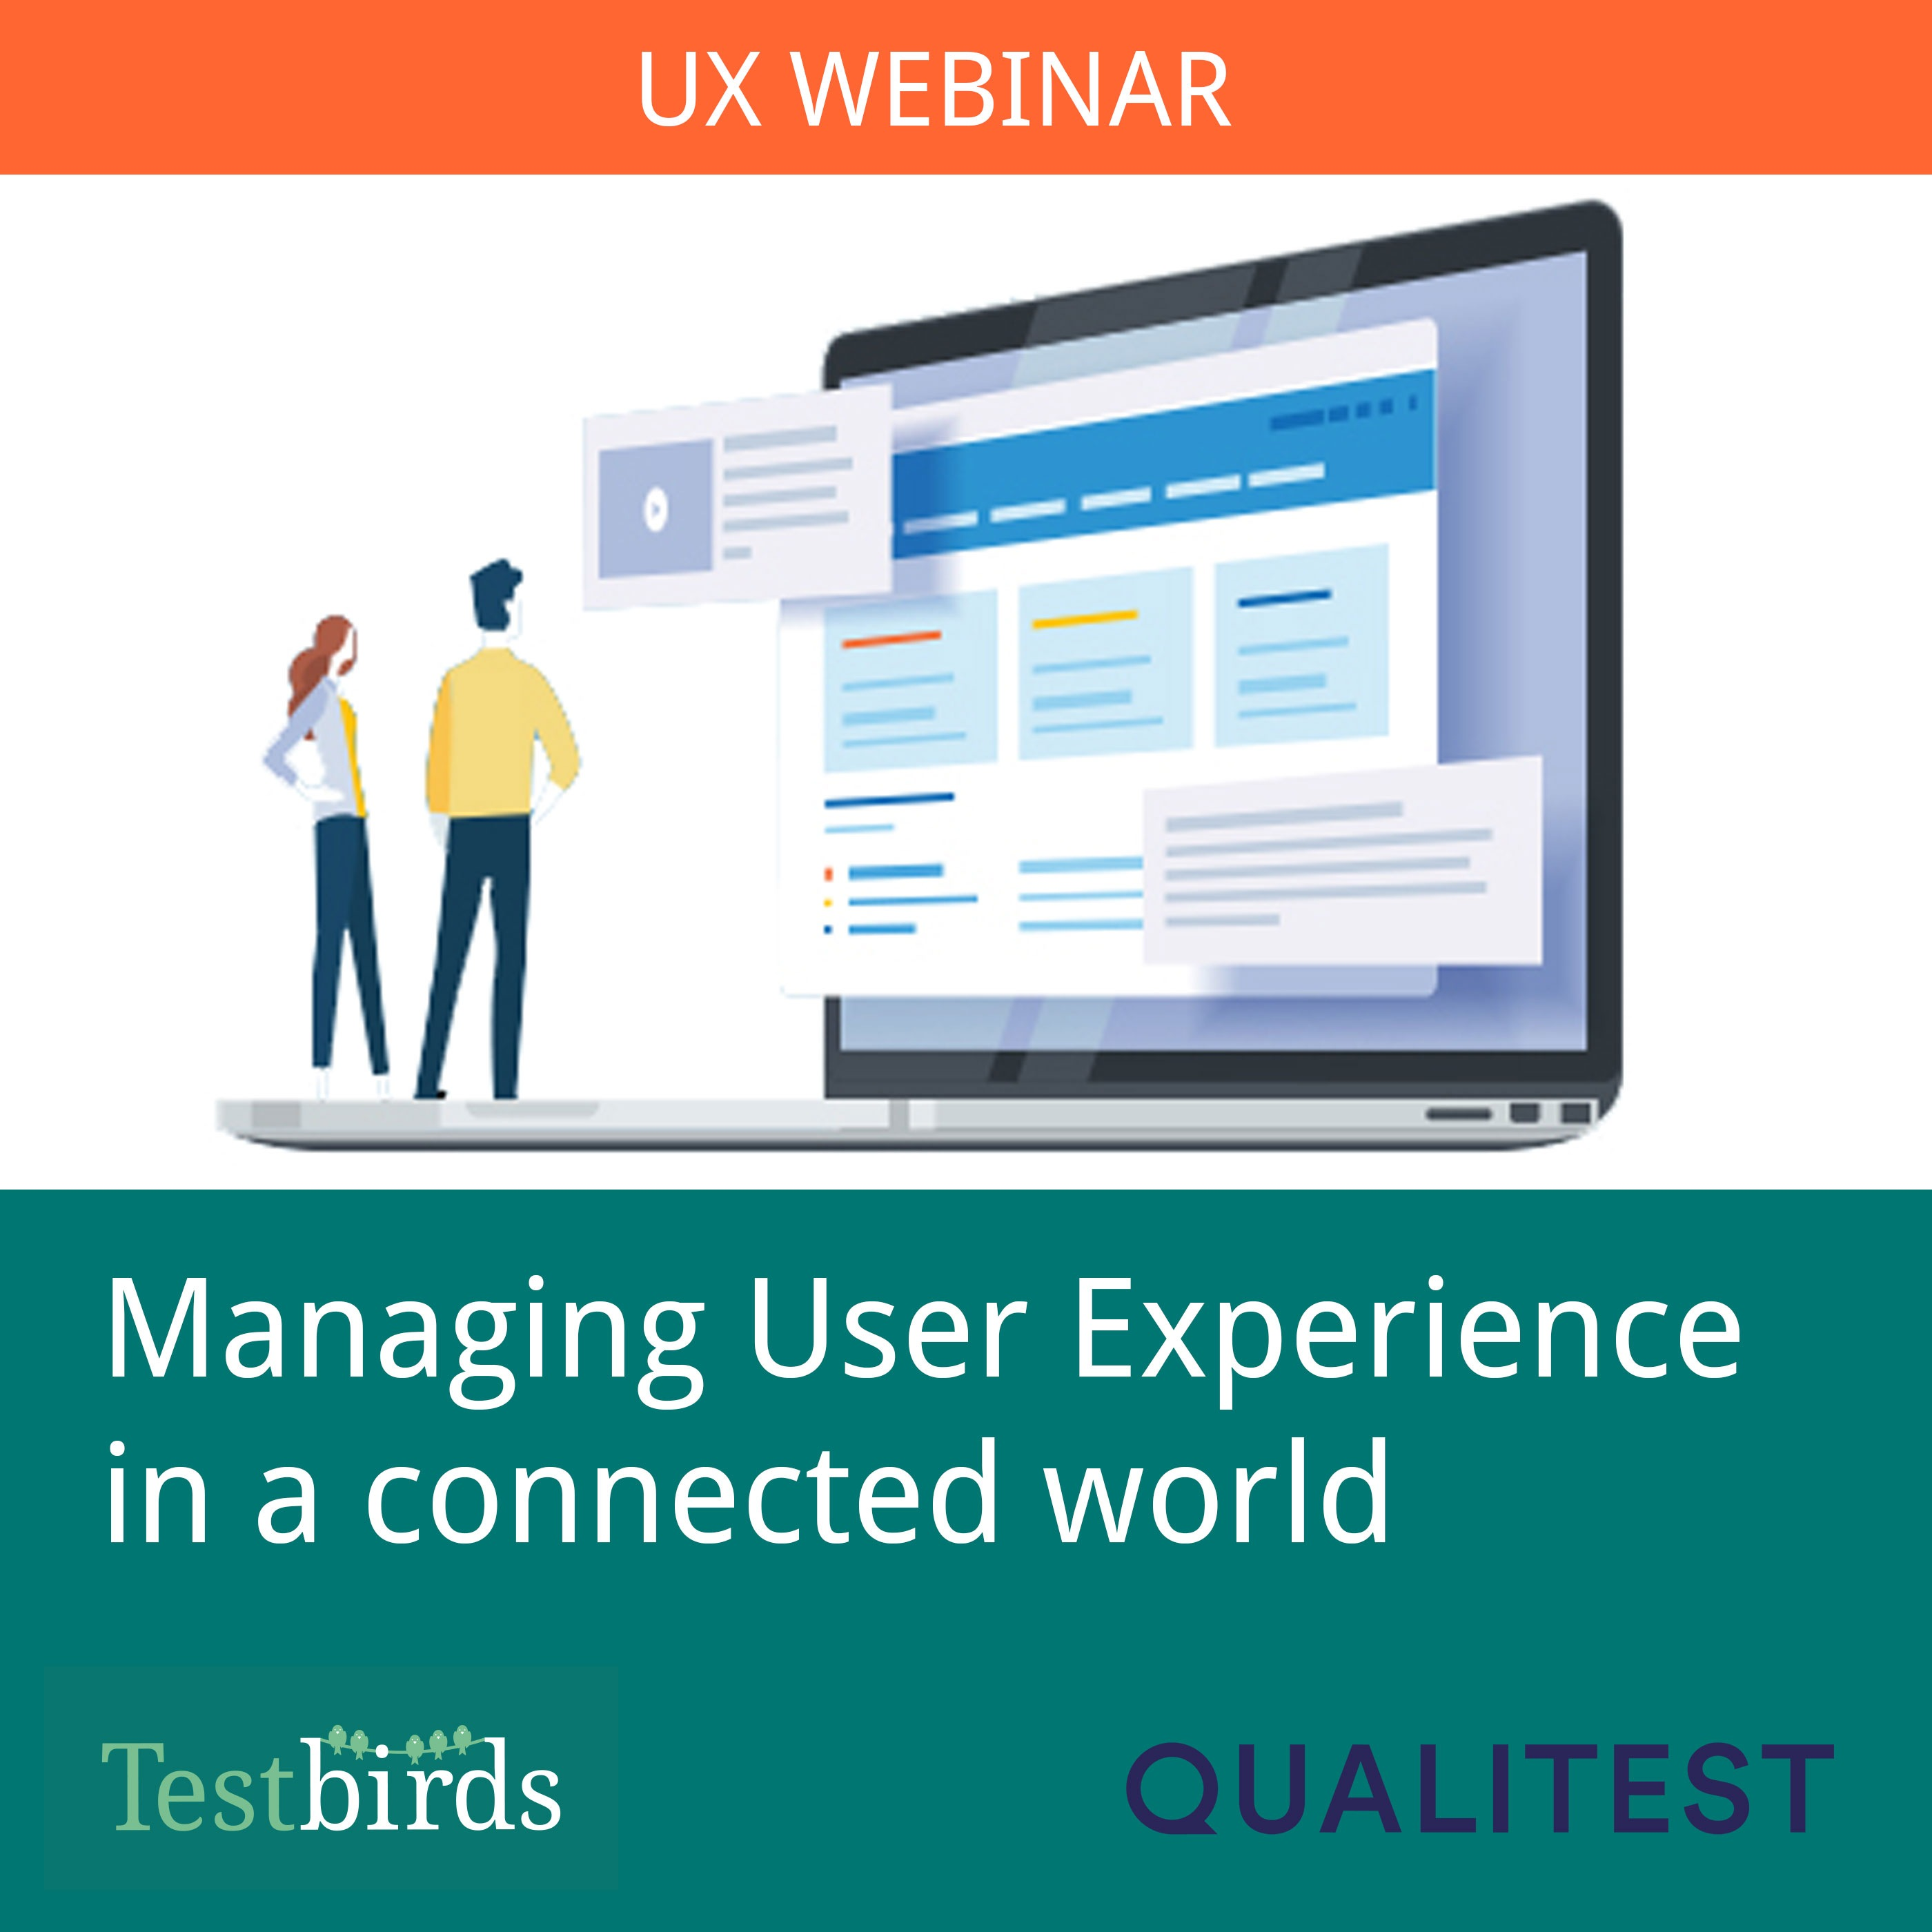 Managing User Experience in a connected world